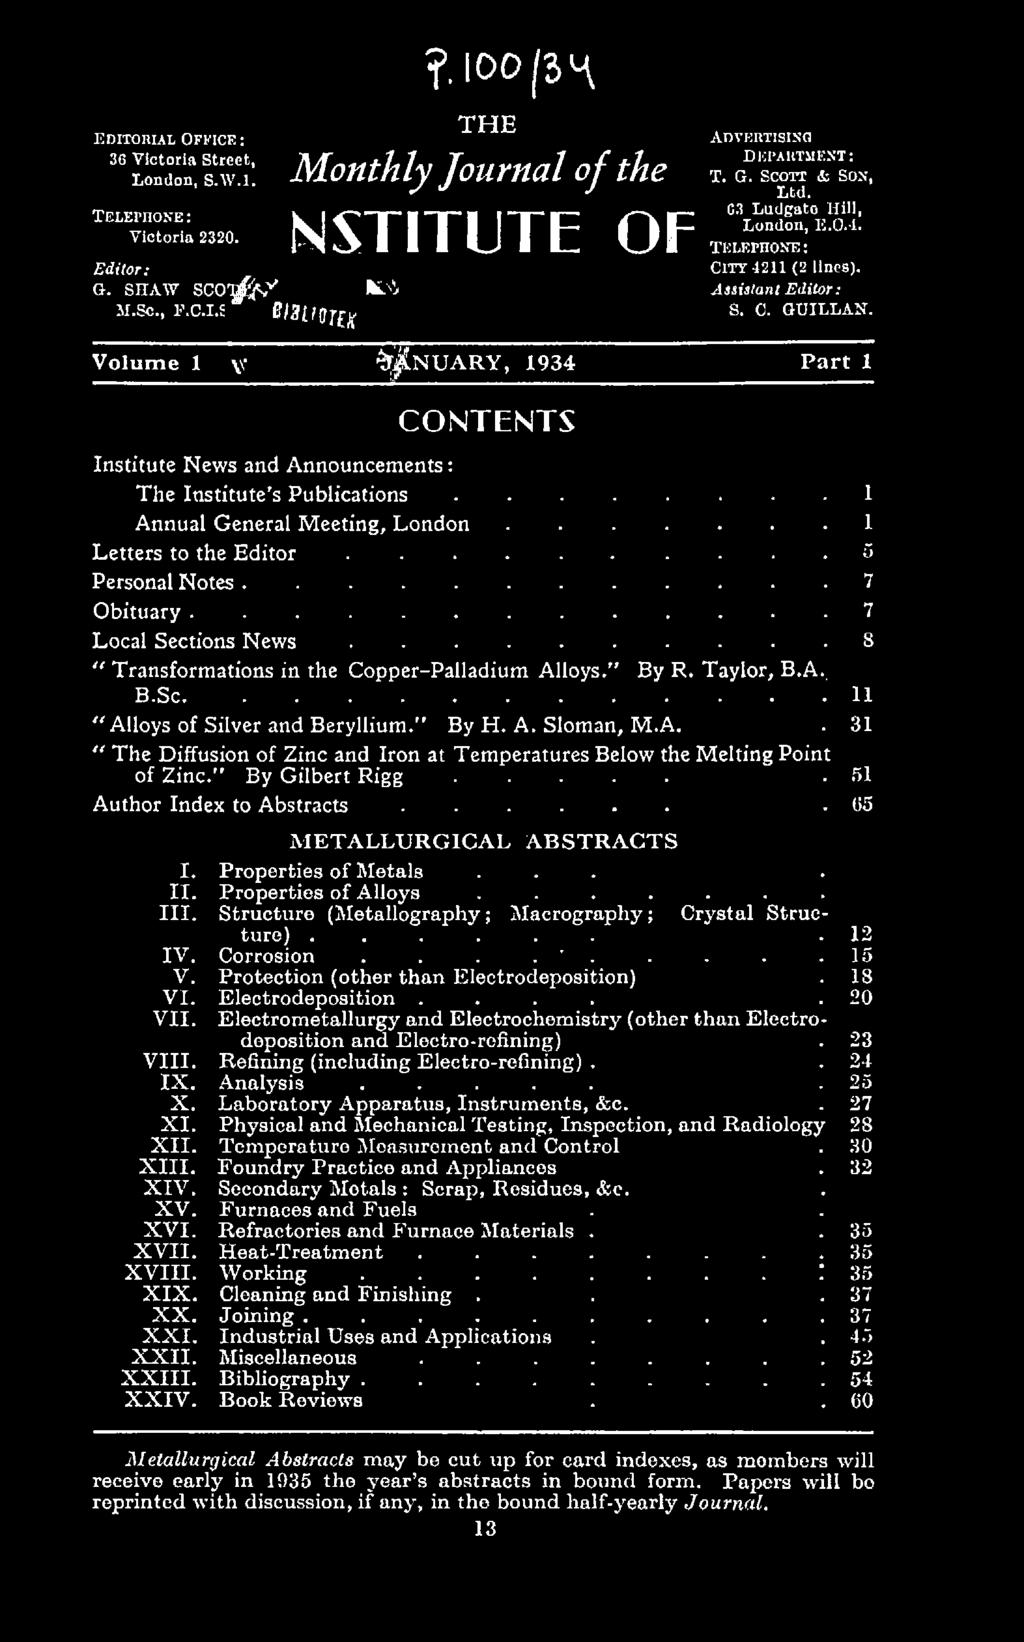 "By H. A. Sloman, M.A. "" The Diffusion of Zinc and Iron at Temperatures Below the Melting Point of Zinc. By Gilbert Rigg..... Author Index to A b s t r a c t s... M E TALLU RG ICAL A B STR A C T S I."